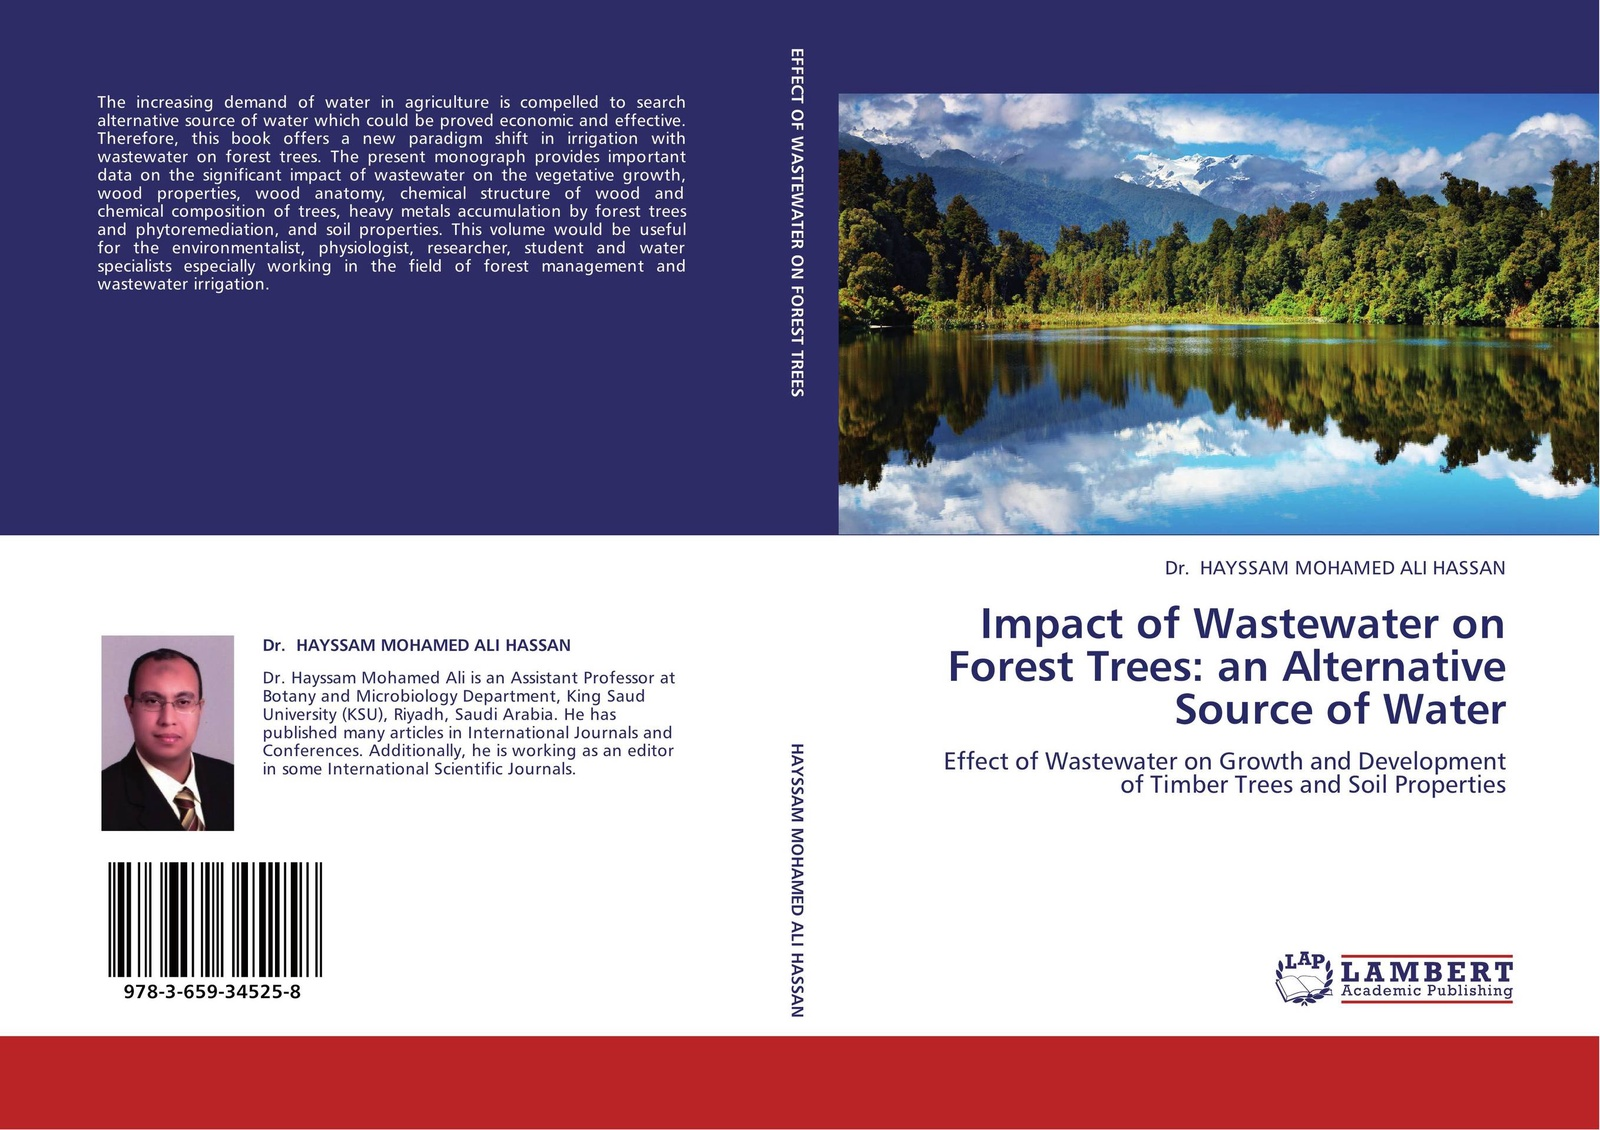 Dr. HAYSSAM MOHAMED ALI HASSAN Impact of Wastewater on Forest Trees: an Alternative Source of Water successful eu leader projects on non wood forest products